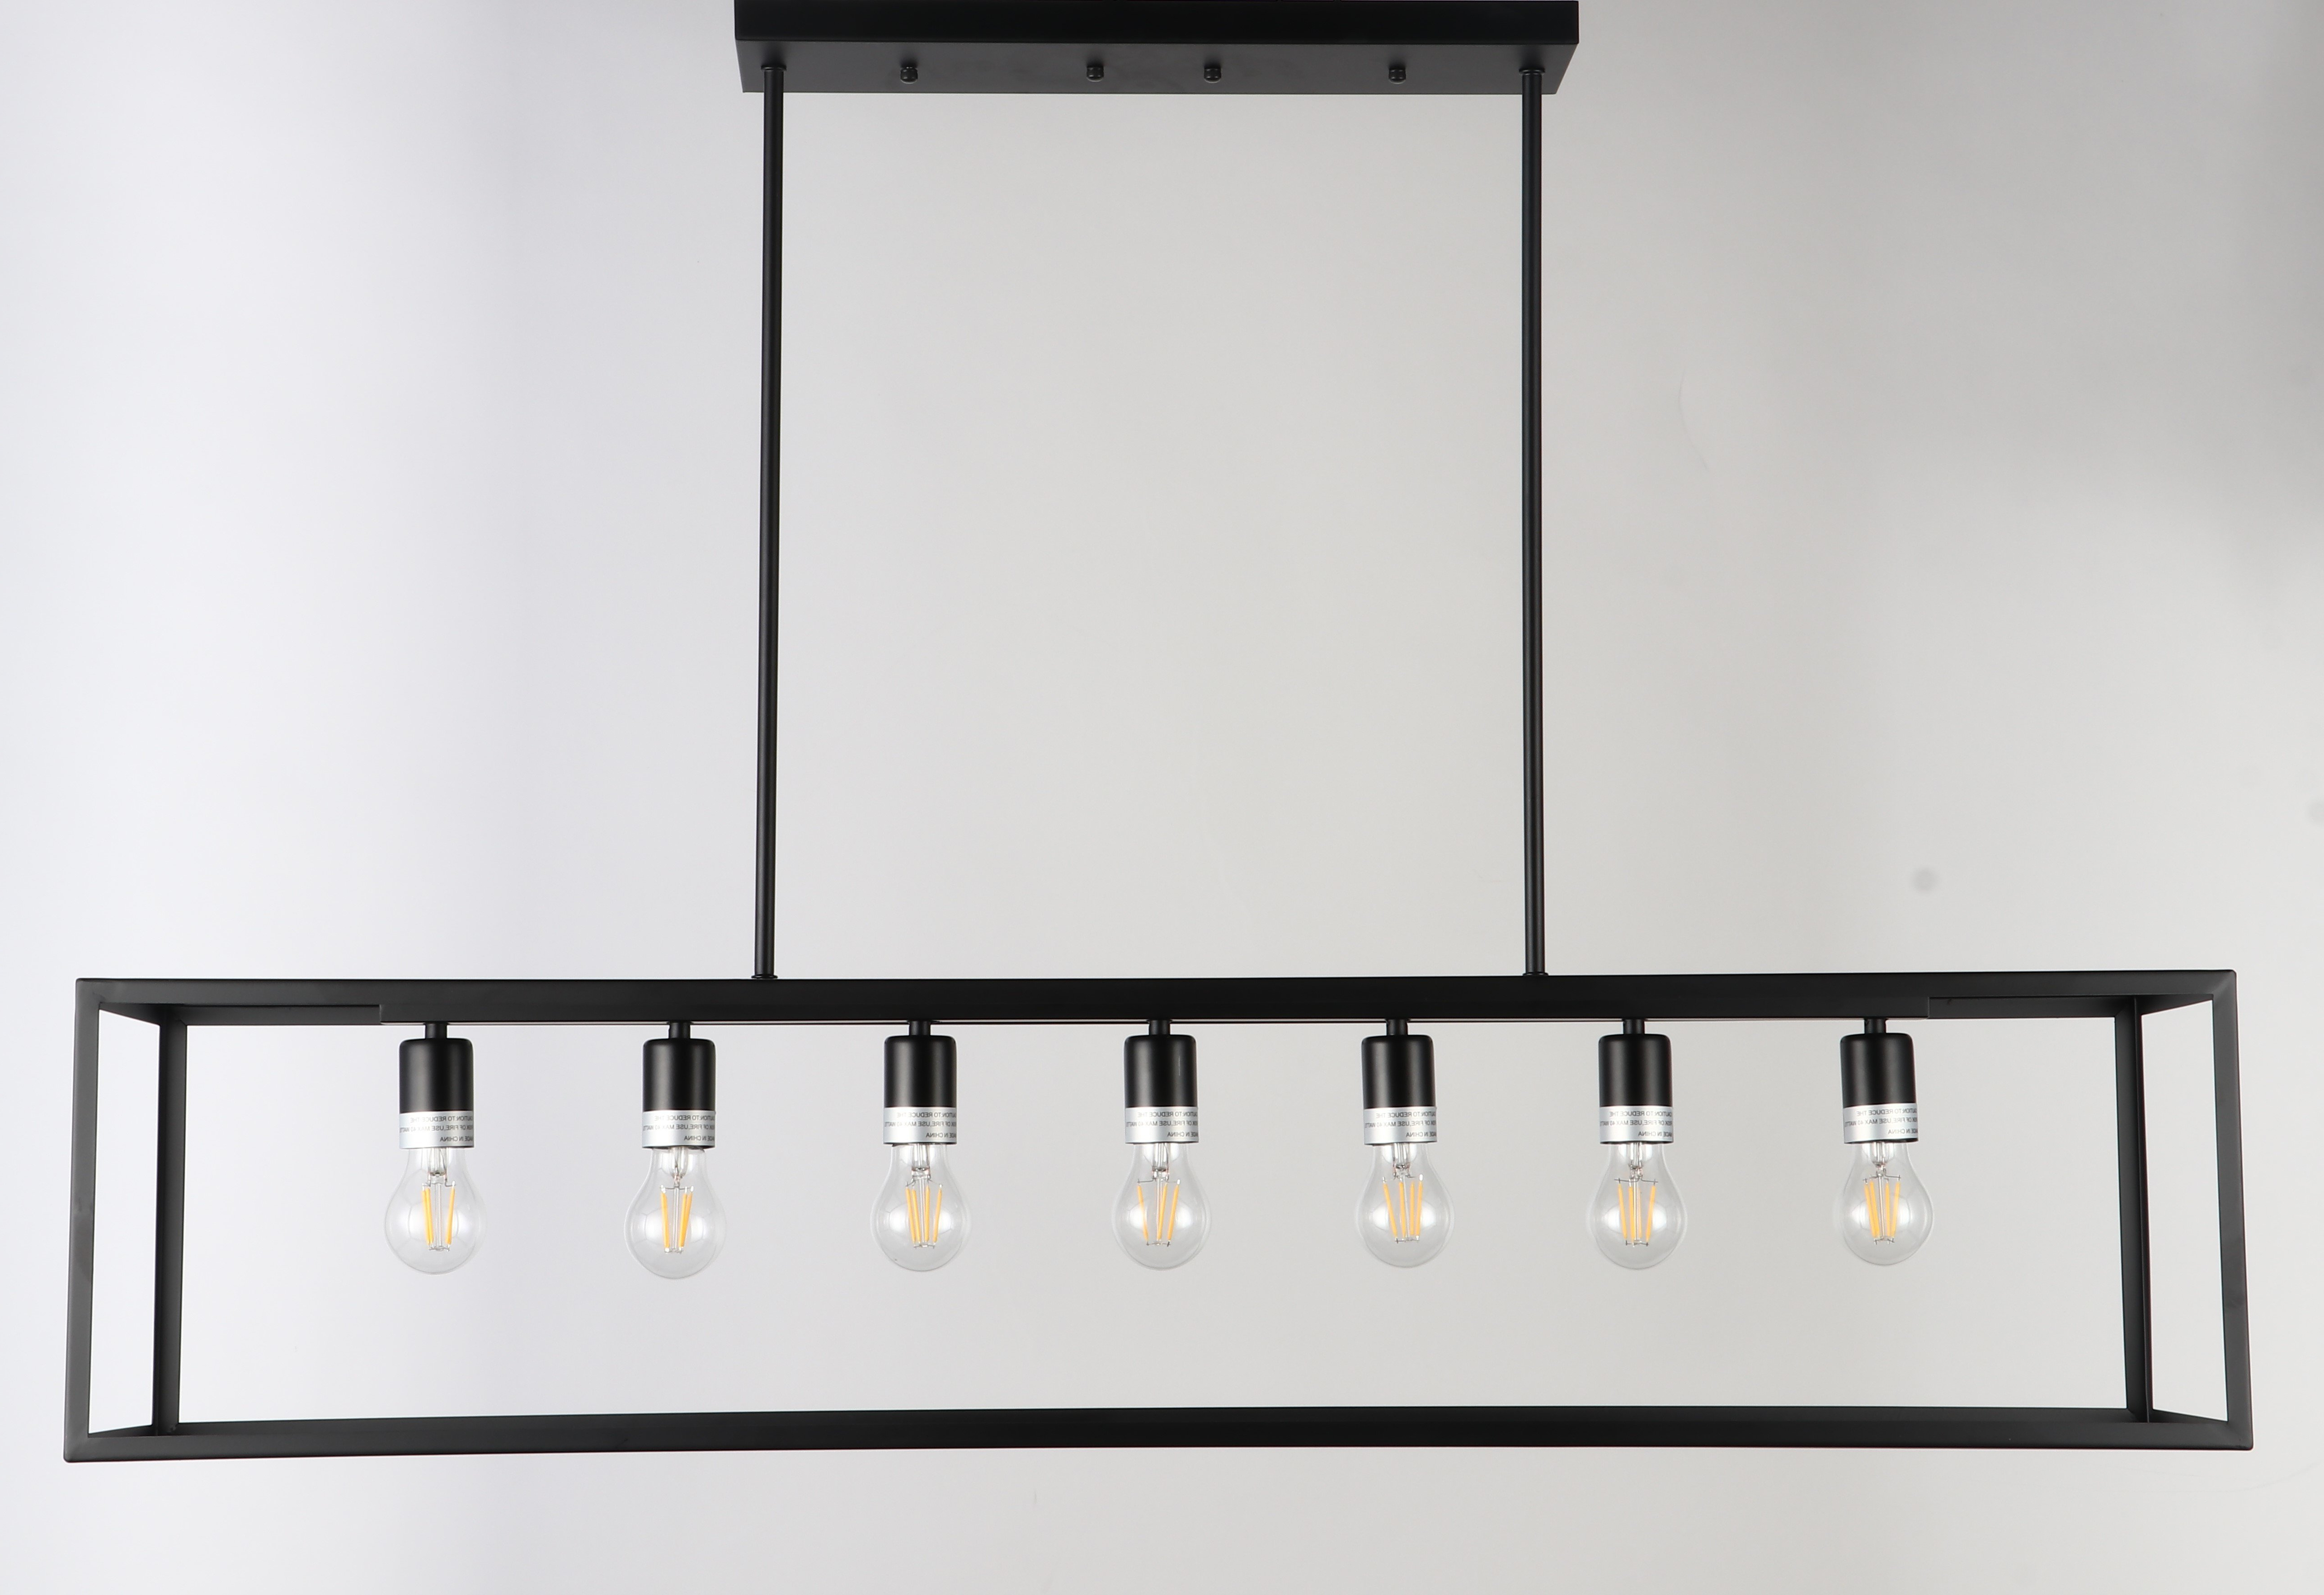 Popular Ratner 7 Light Kitchen Island Linear Pendant Within Sousa 4 Light Kitchen Island Linear Pendants (View 8 of 20)